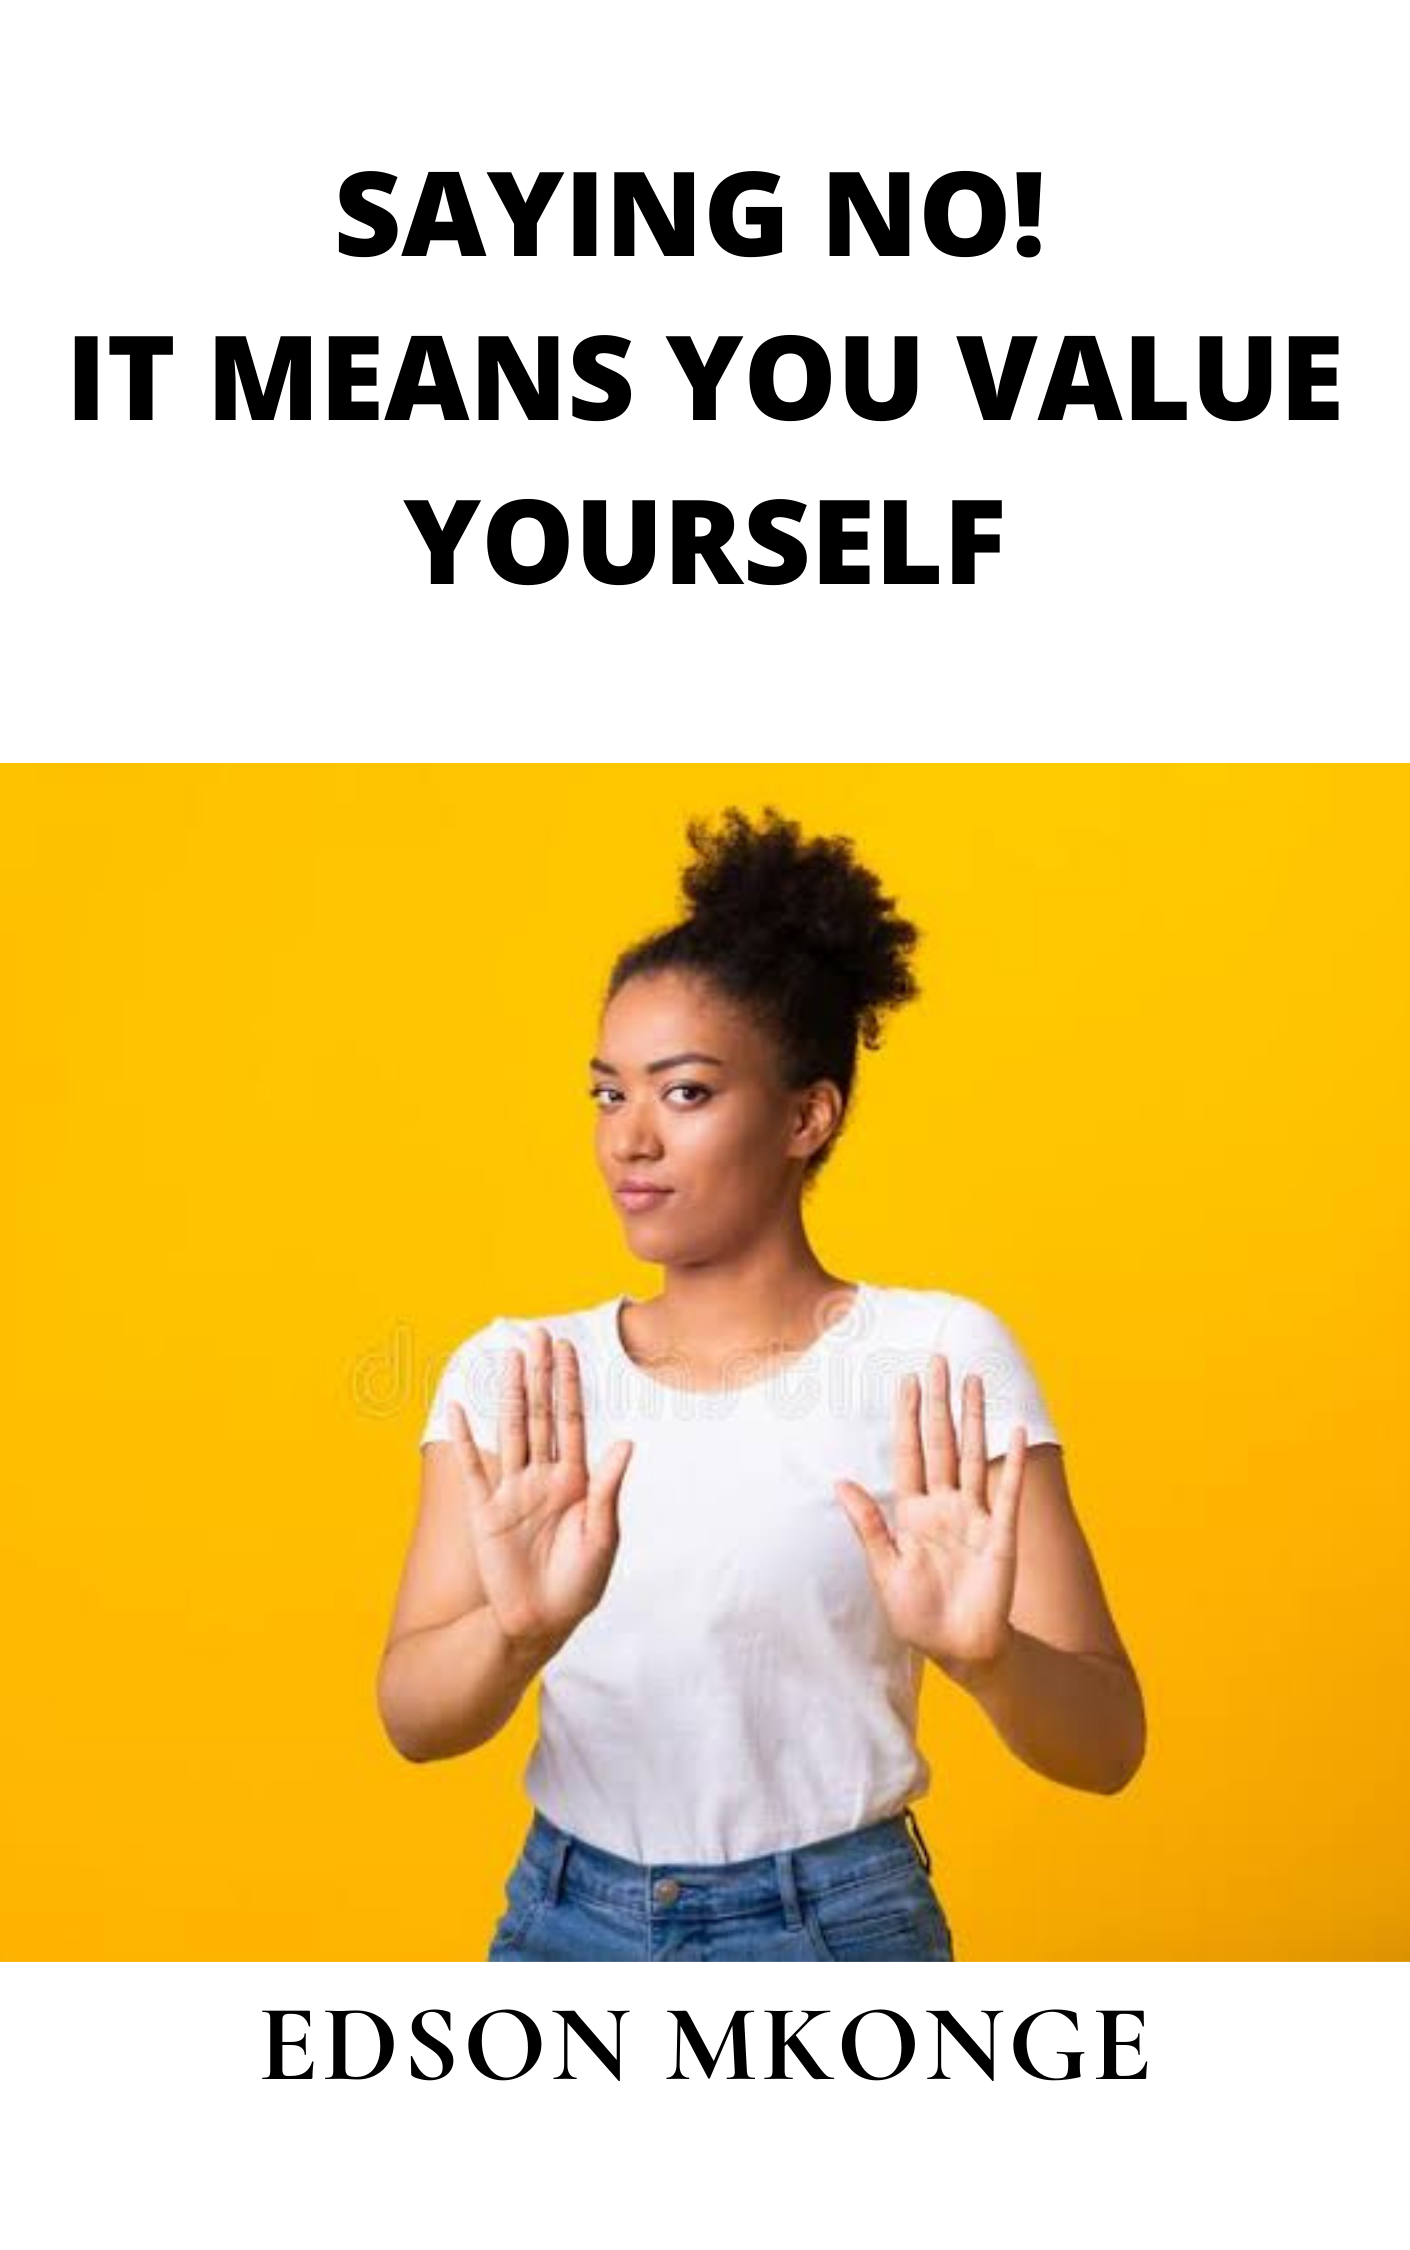 SAYING NO! IT MEANS YOU VALUE YOURSELF